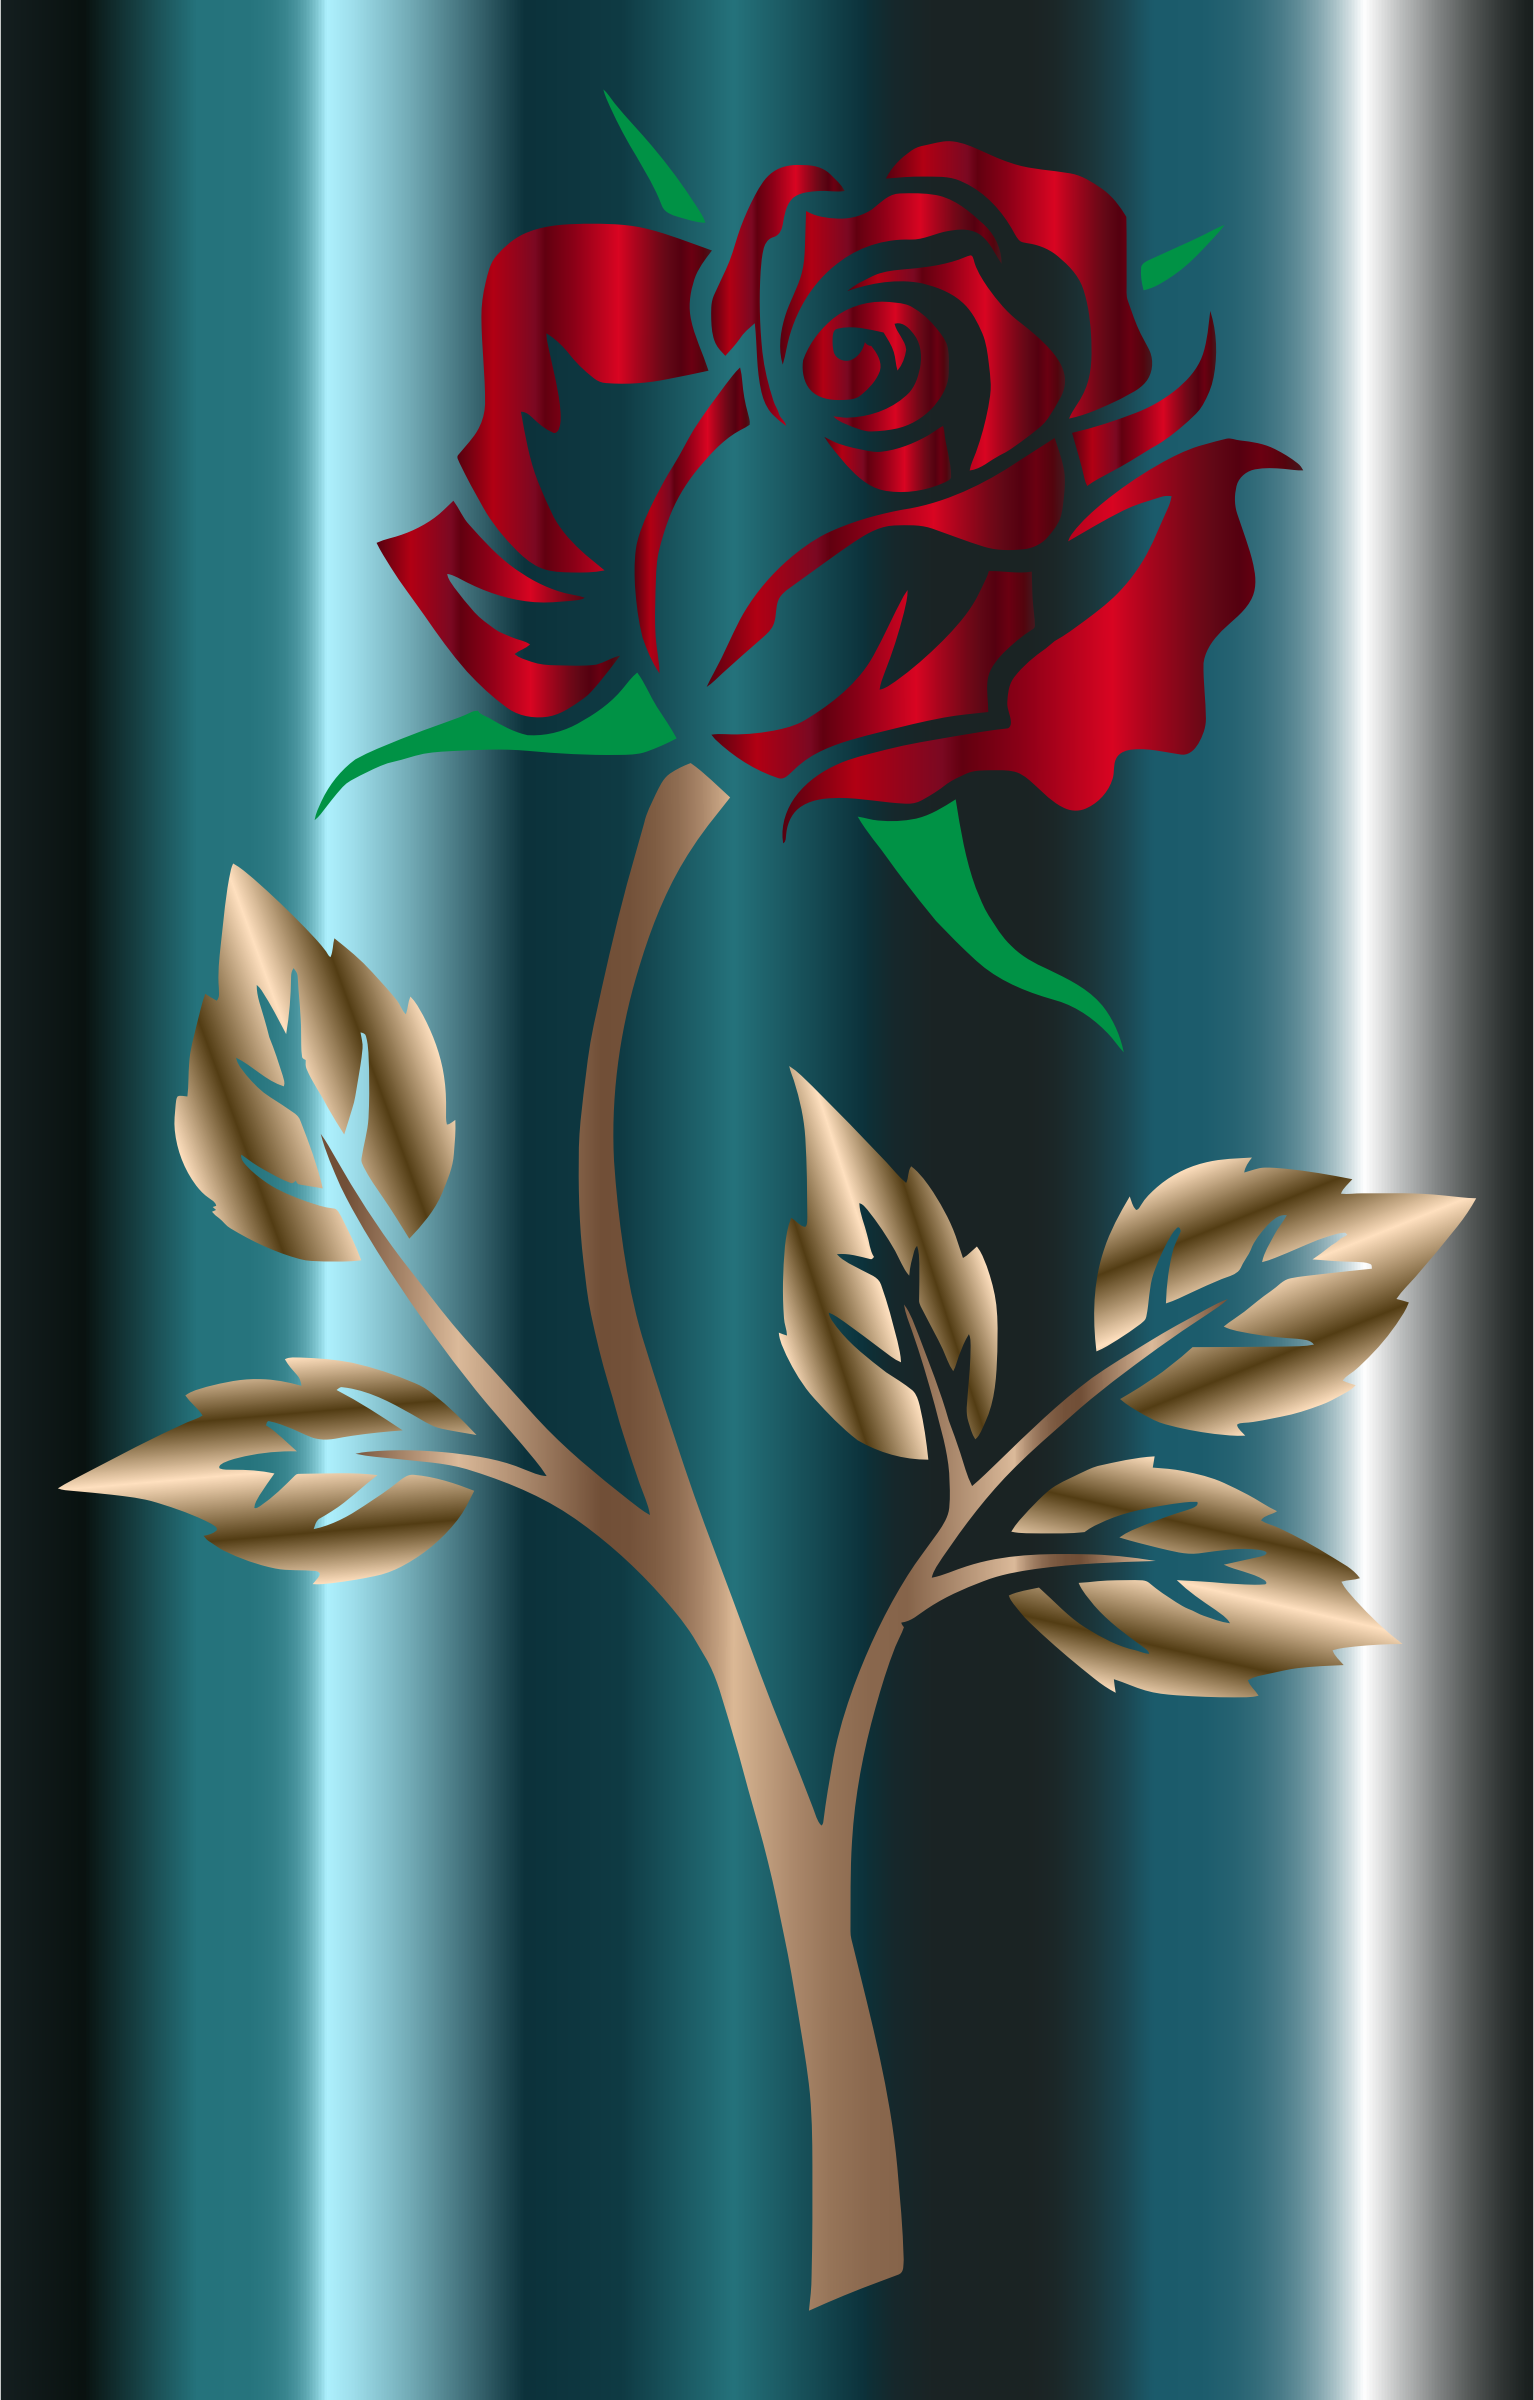 Colored Rose 3 by GDJ